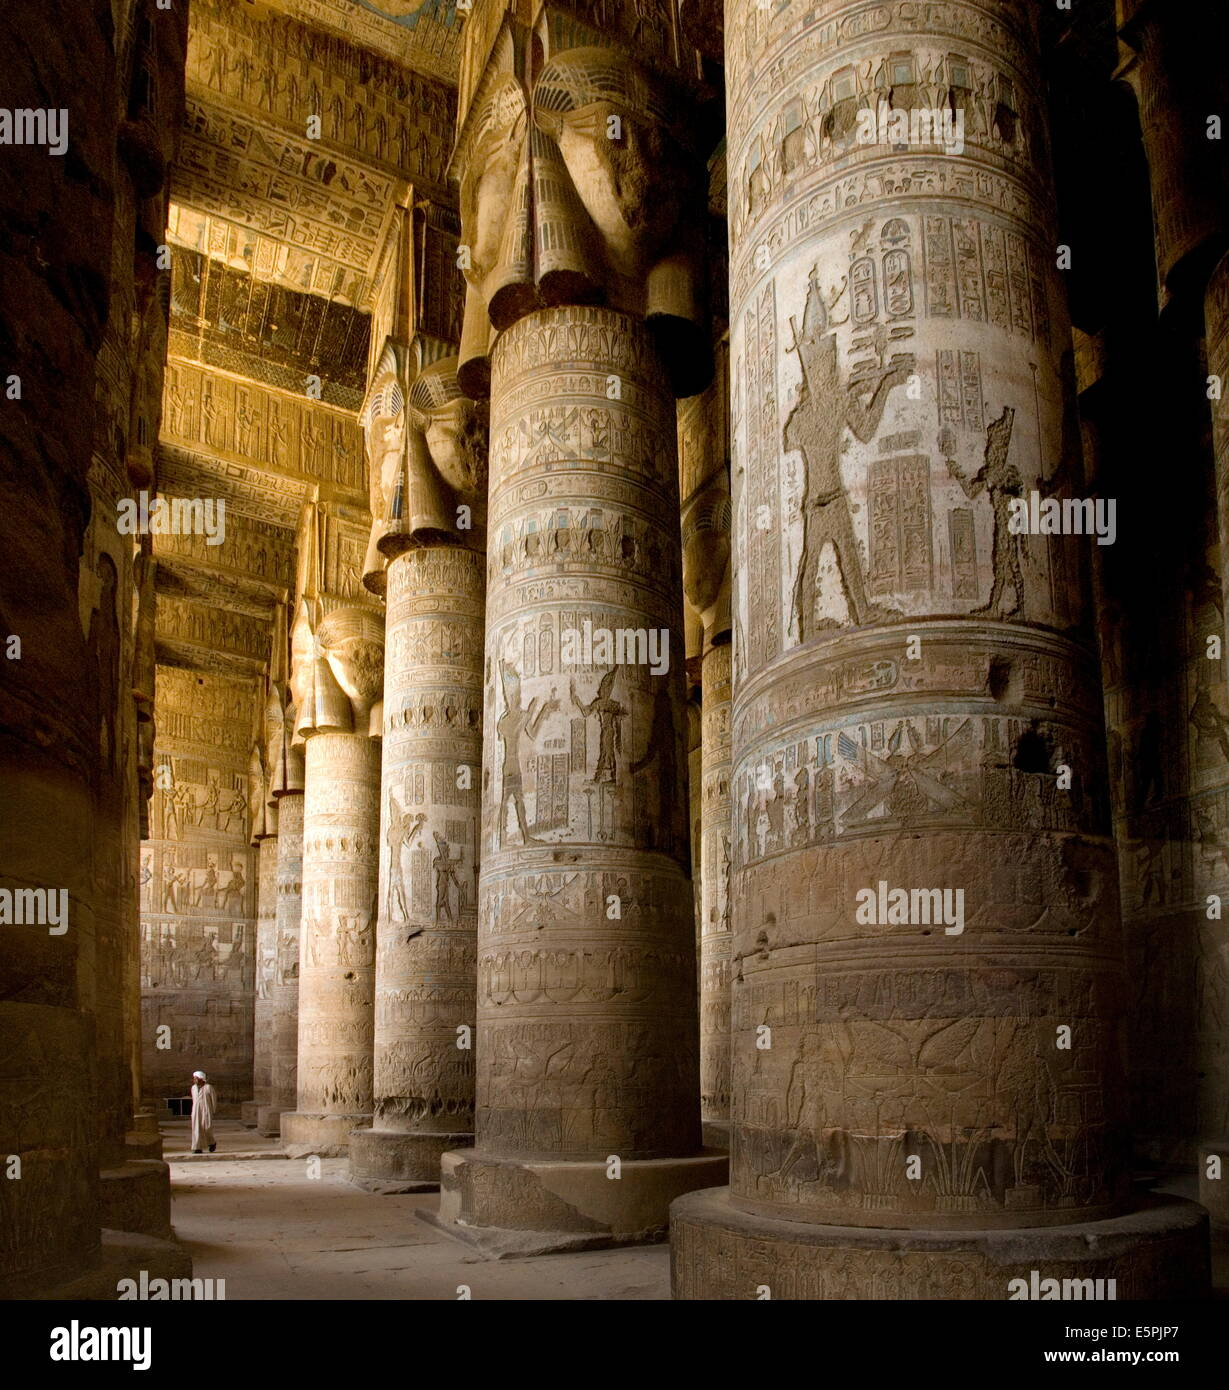 The Outer Hypostyle Hall in the Temple of Hathor, Dendera necropolis, Qena, Nile Valley, Egypt, North Africa, Africa - Stock Image